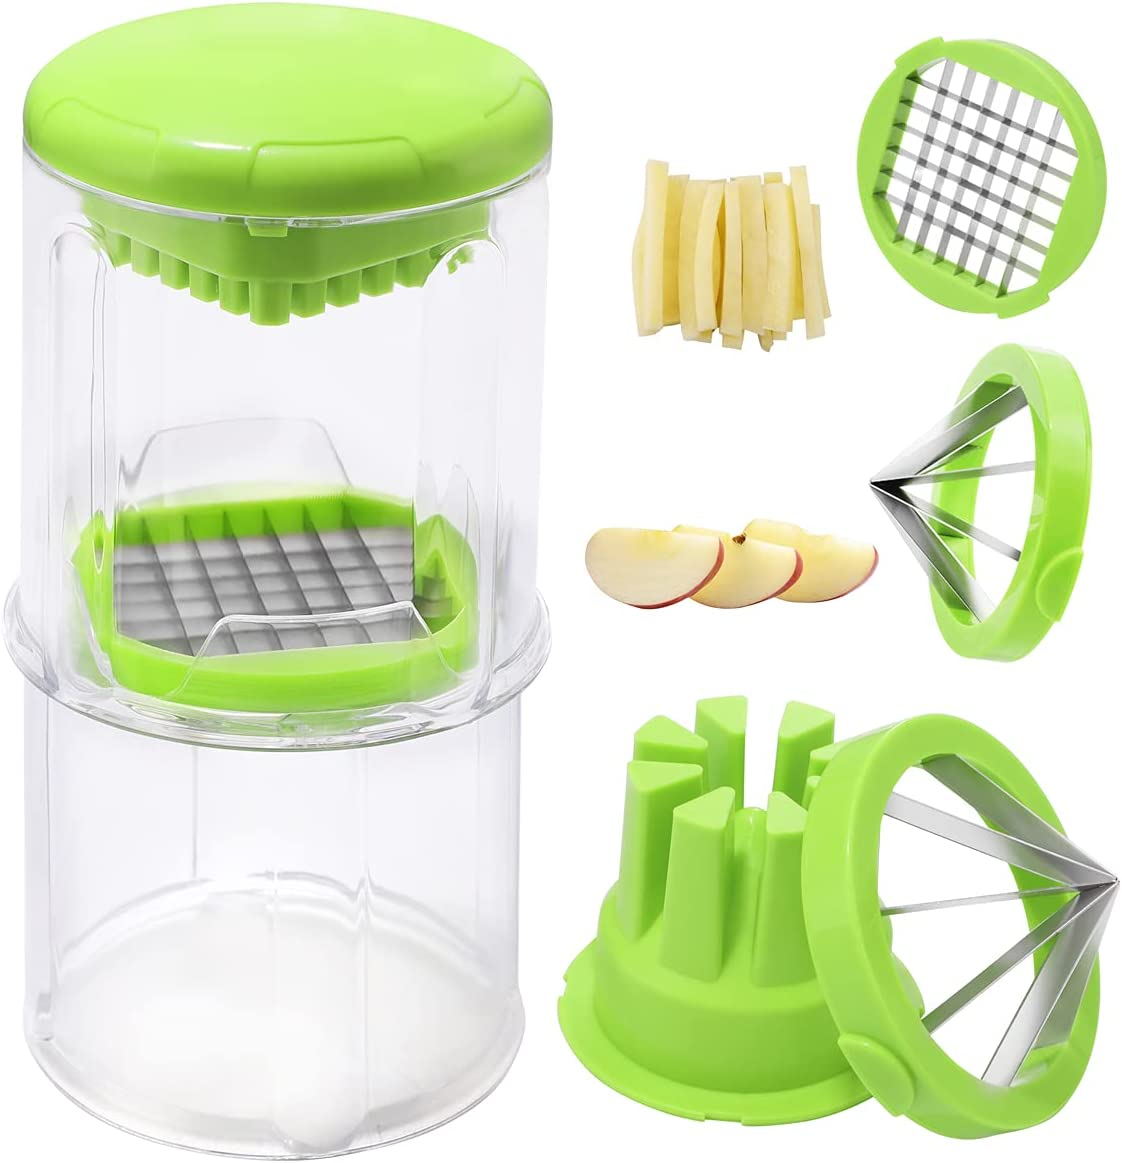 Supernal French Fry Cutter,Apple Slicer Cutter with 2 Size Blades,Vegetable Slicer,Use for Onion, Orange, Cucumber, Carrots, Veggie Sticks, Vegetable Carrot Onion Chopper Easy to Clean